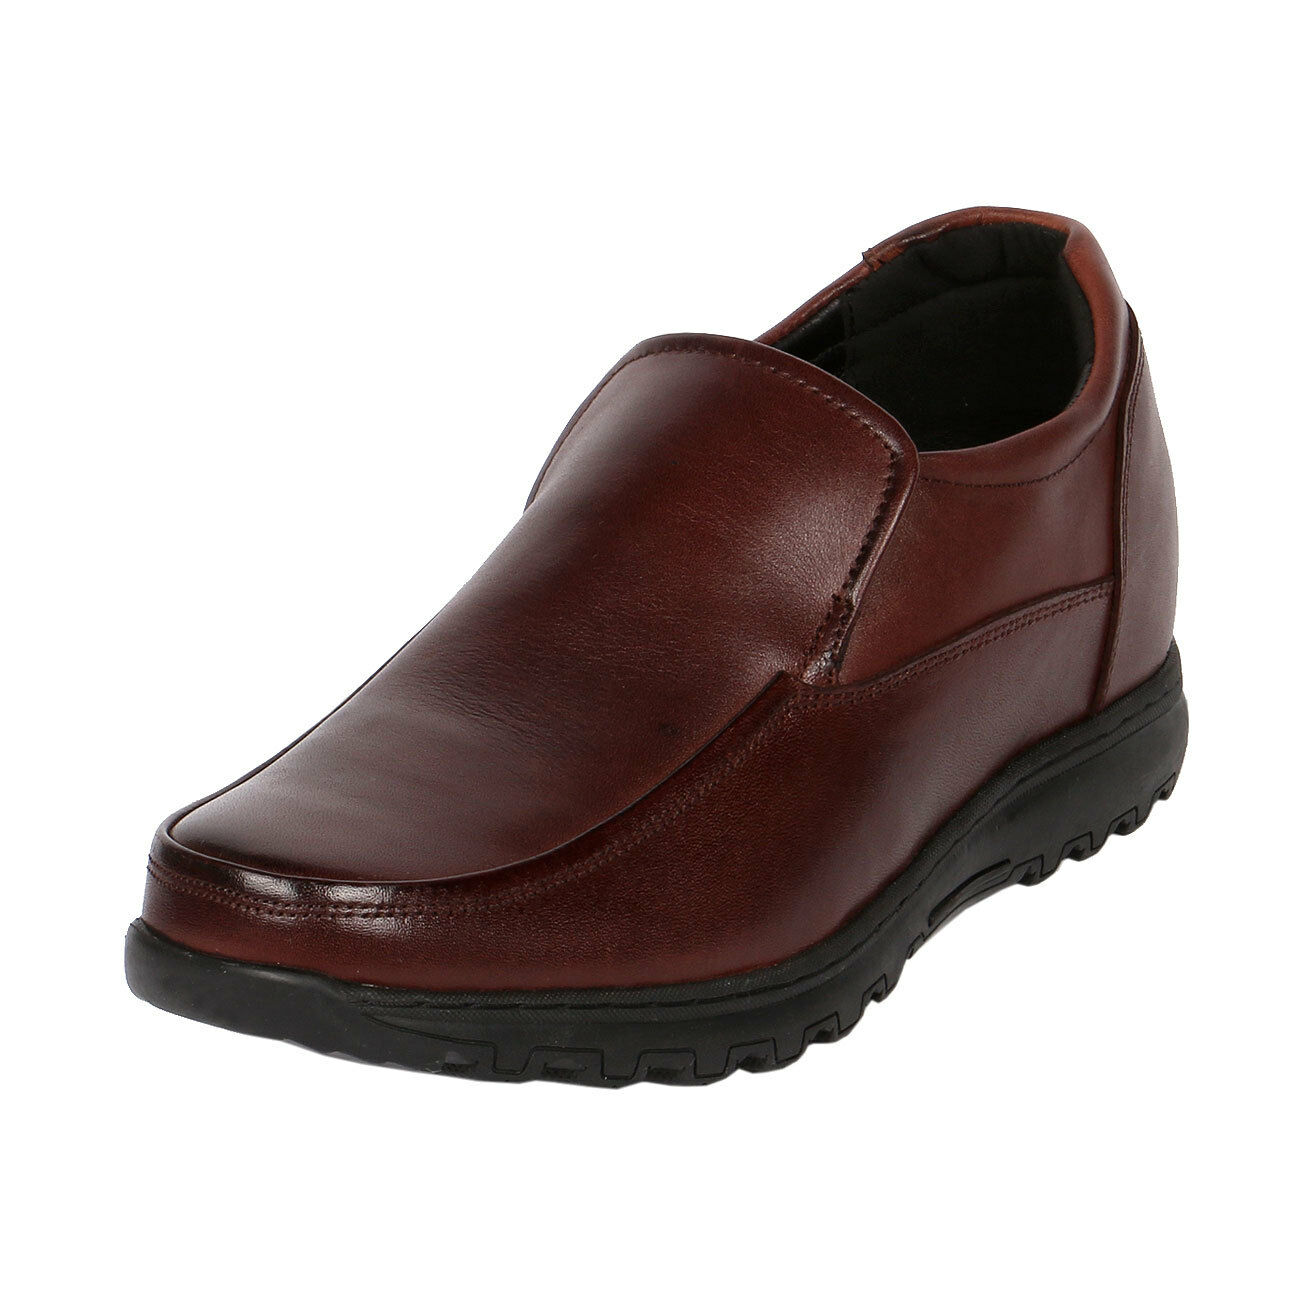 Men's Elevator Casual CYC89BR Shoes 3